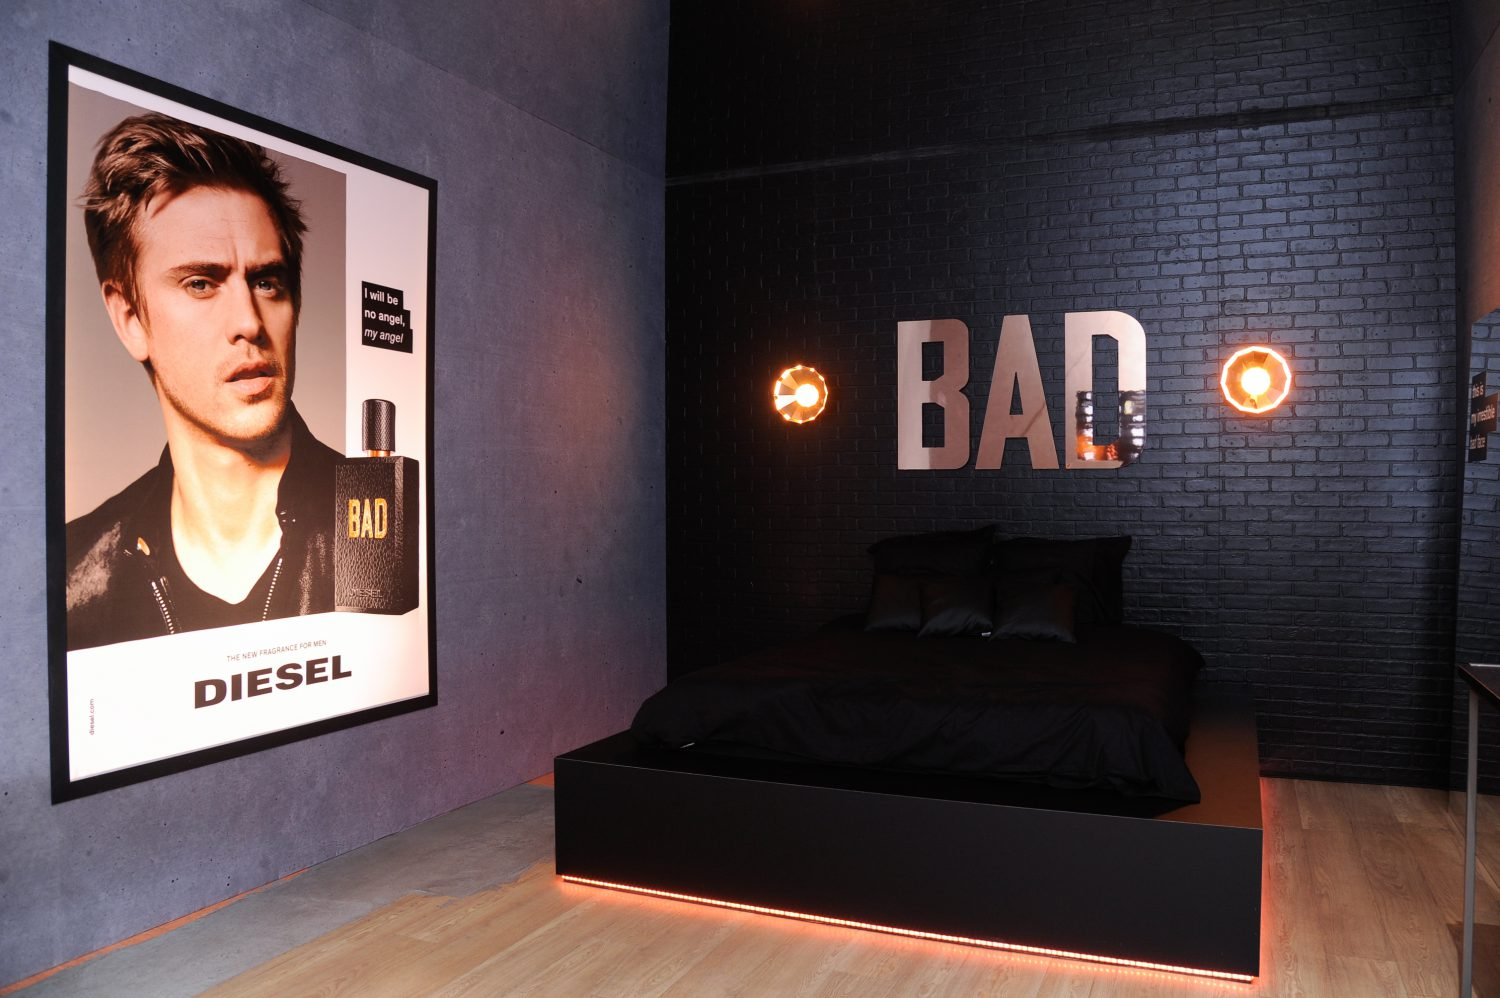 beauty diesel bad perfume launch party dierickx glenn. Black Bedroom Furniture Sets. Home Design Ideas